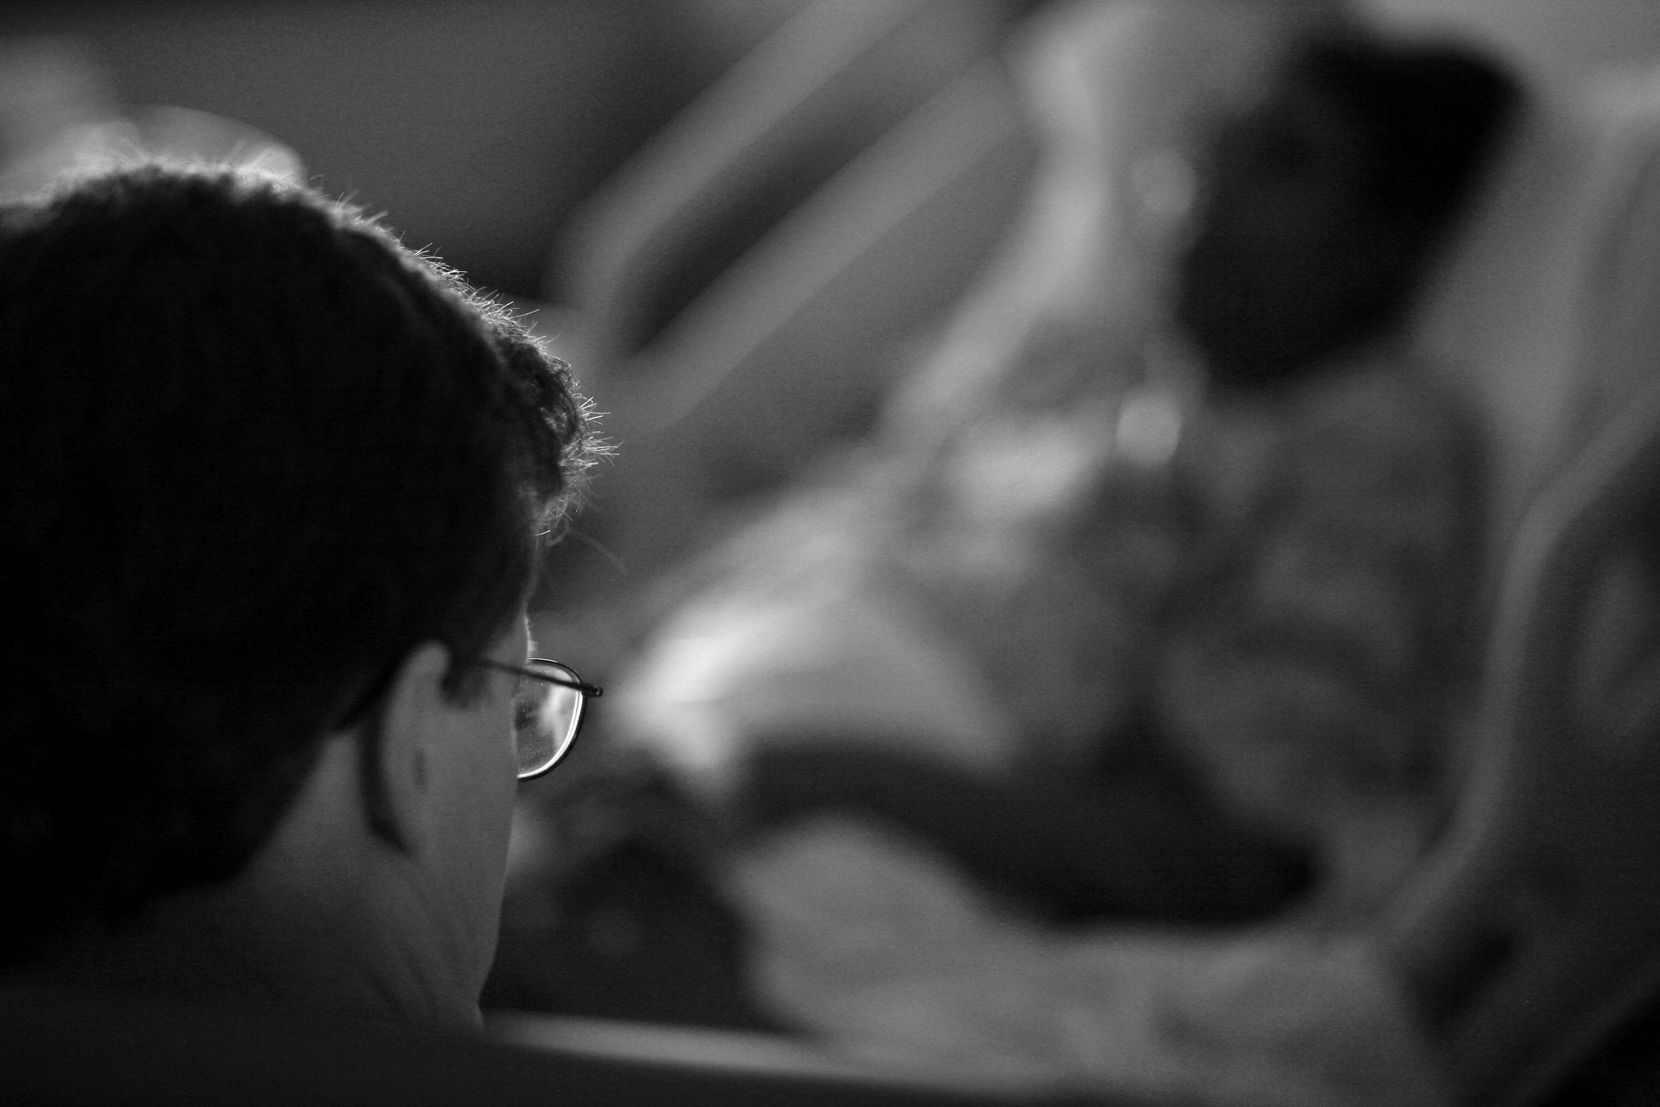 In this 2008 archival photo, Dr. Robert Fine talks with a patient about her condition.